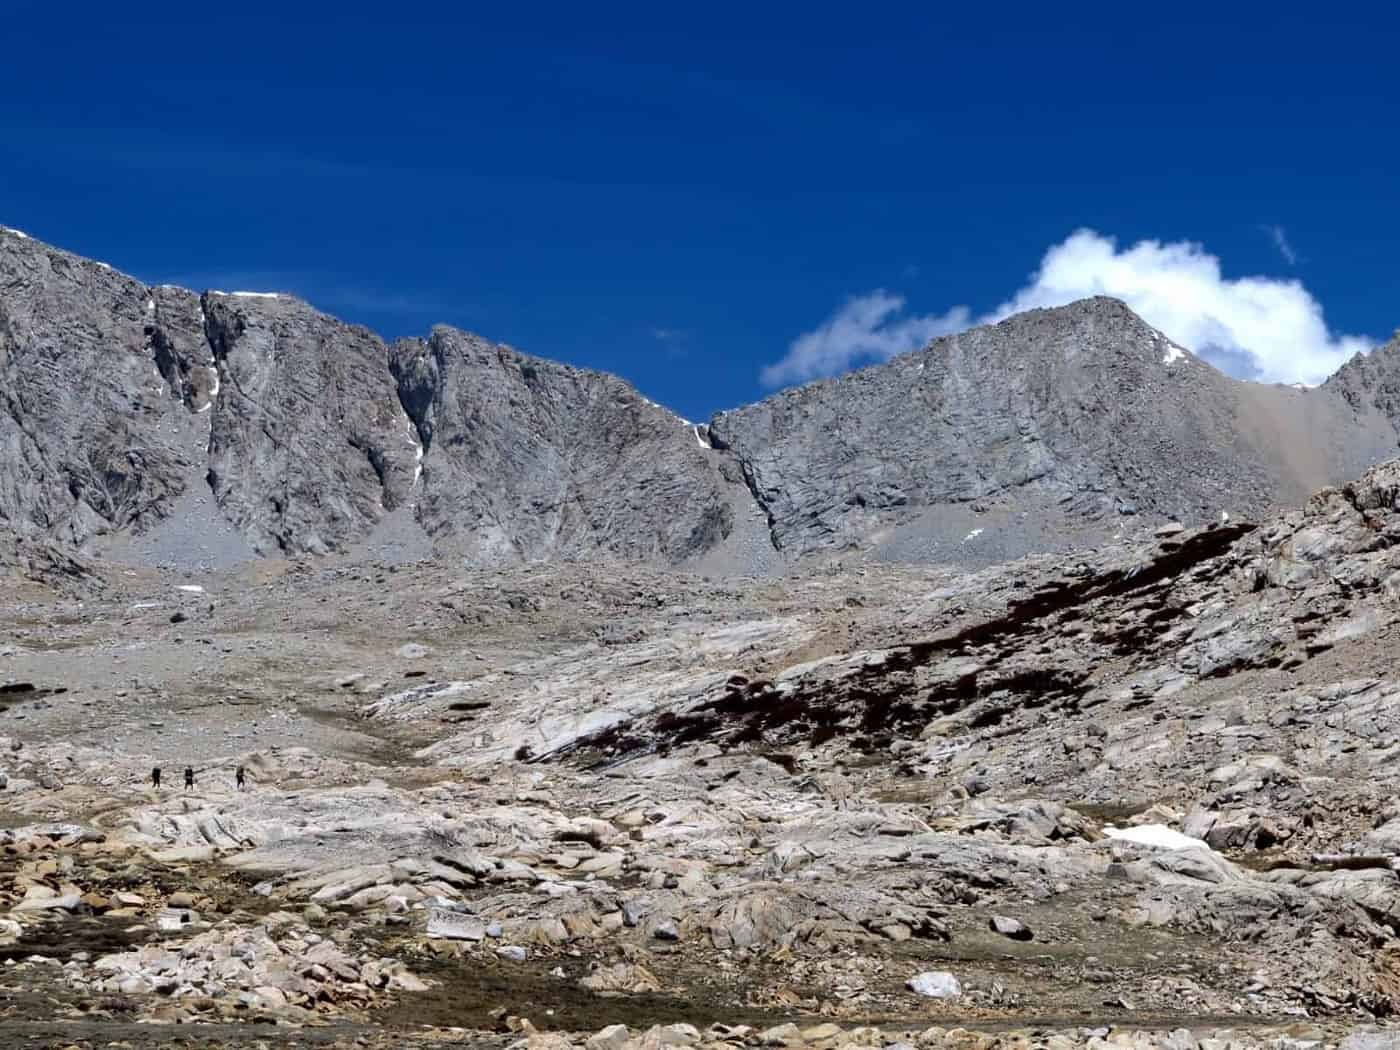 JMT forester pass